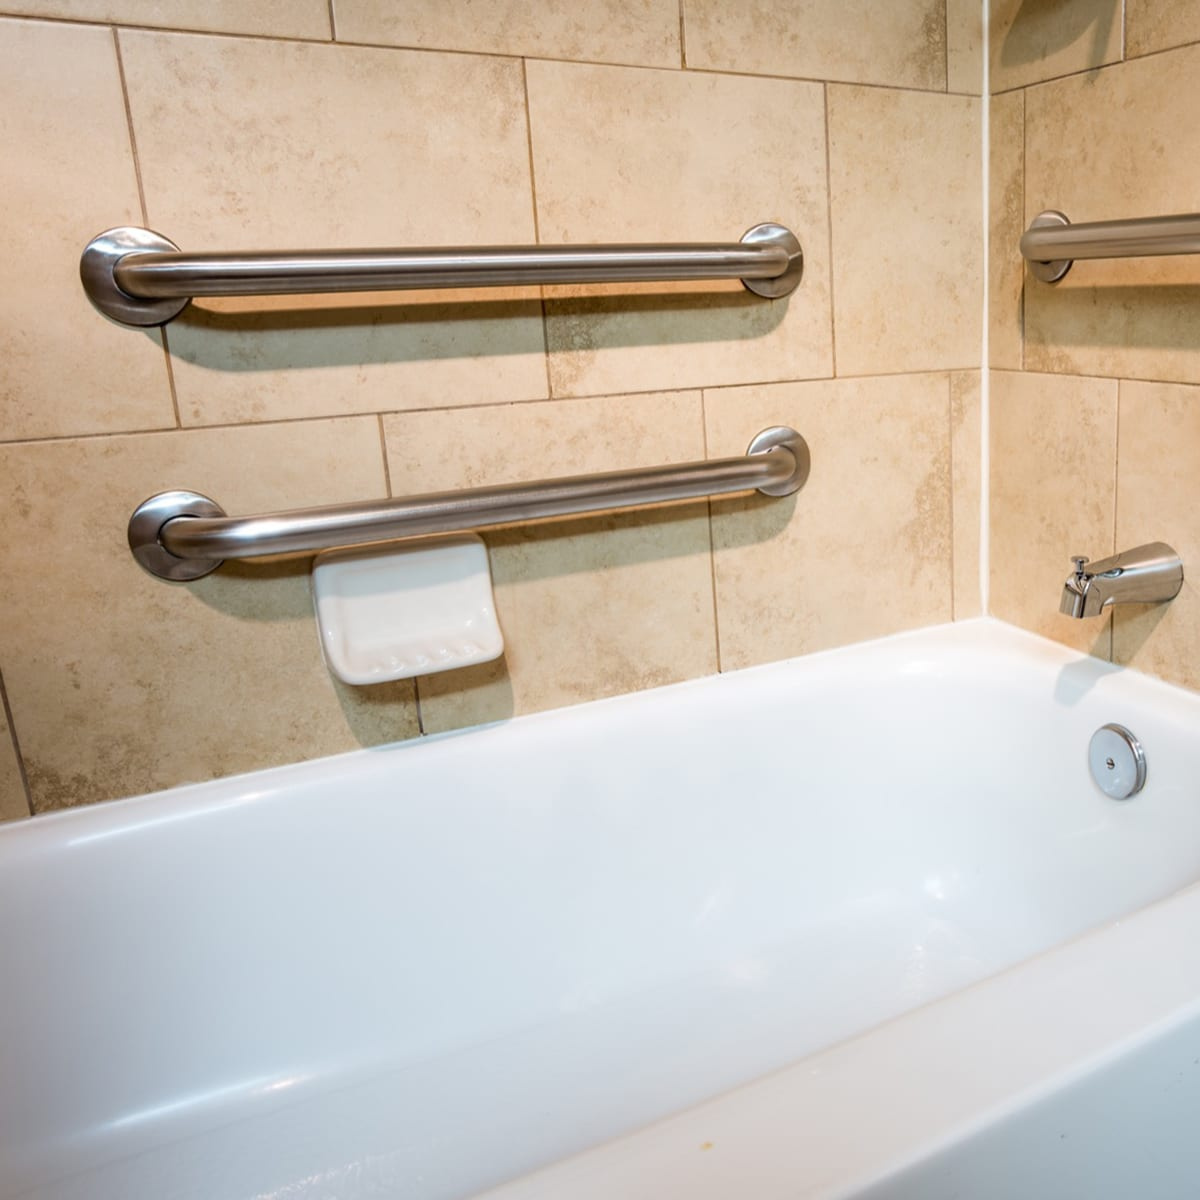 Bathtub with Safety Grab Bars